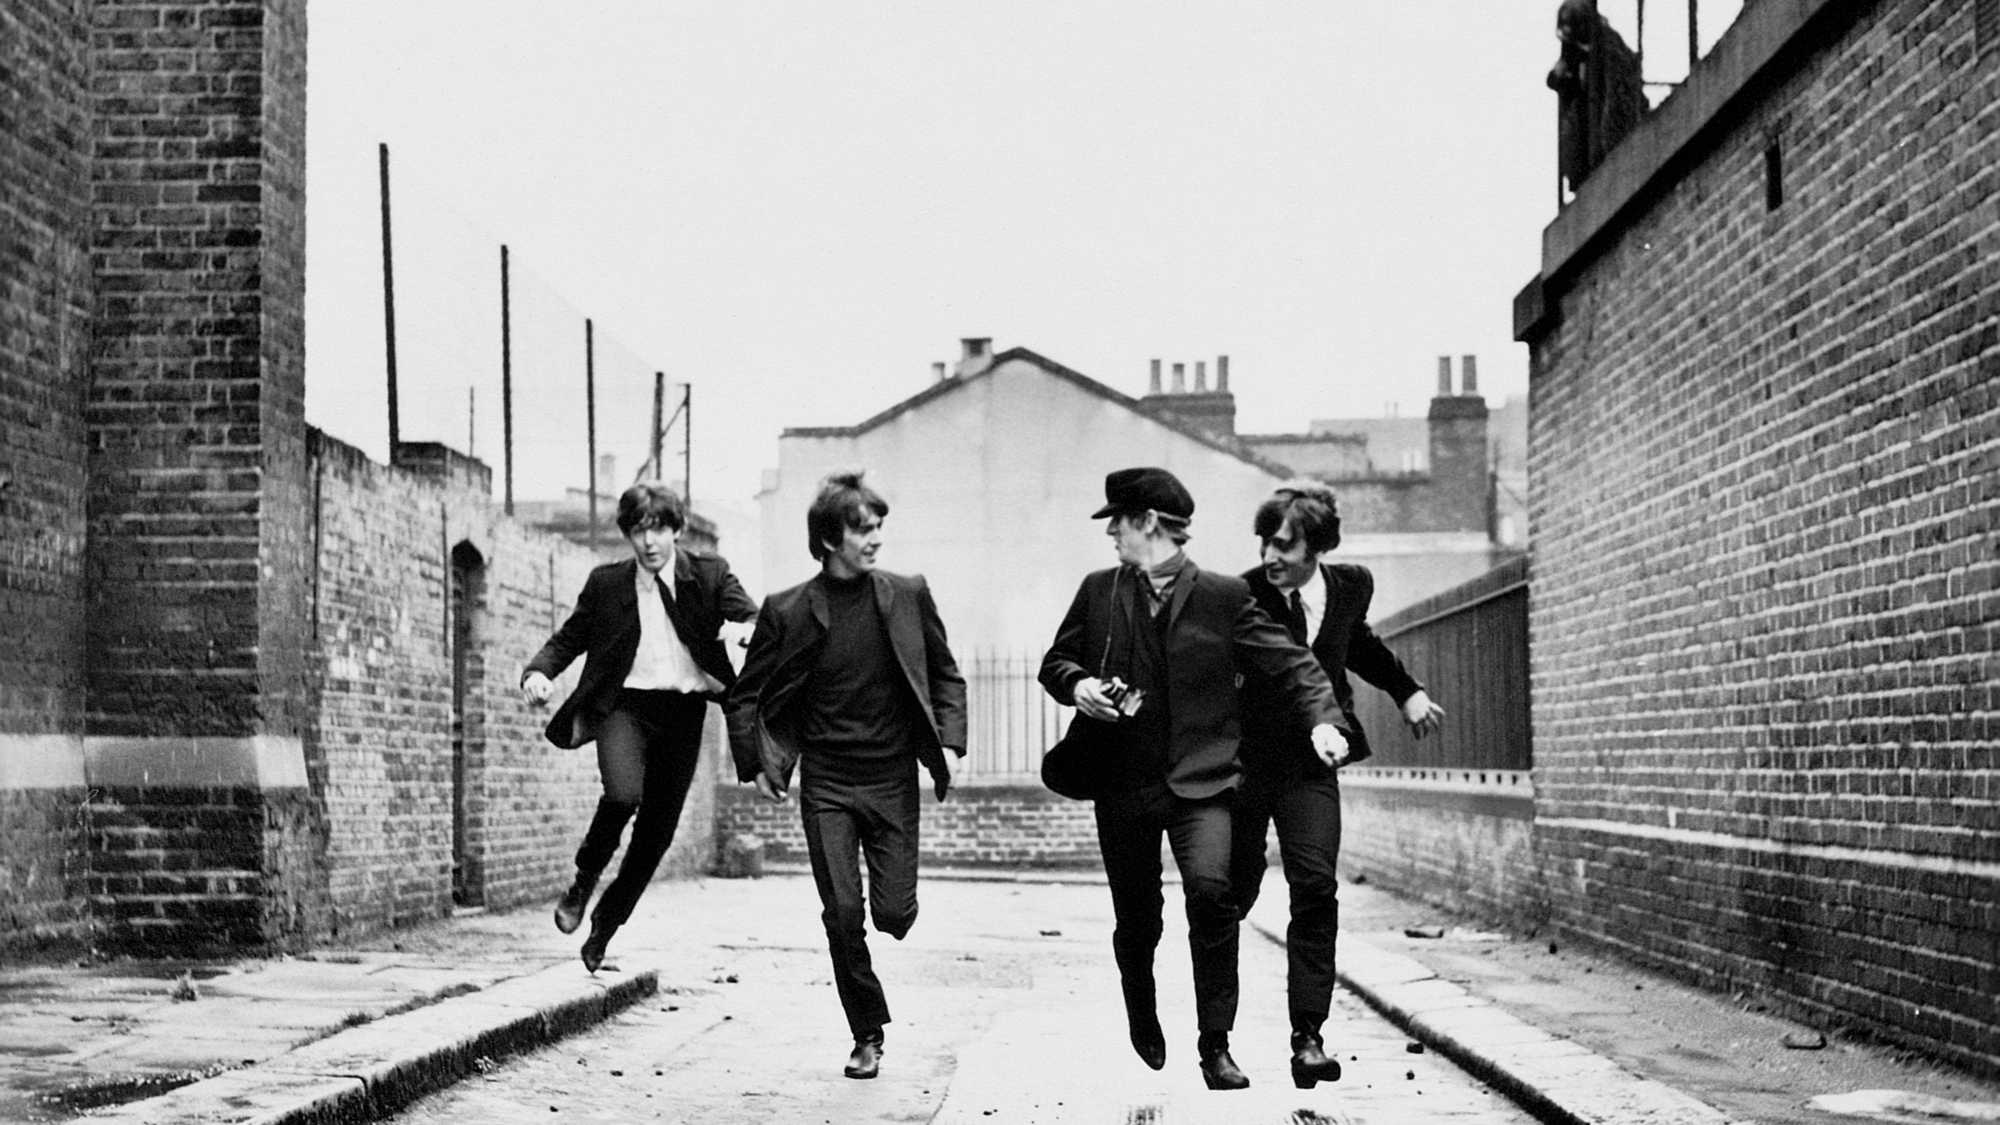 A Hard Day's Night (image 1)